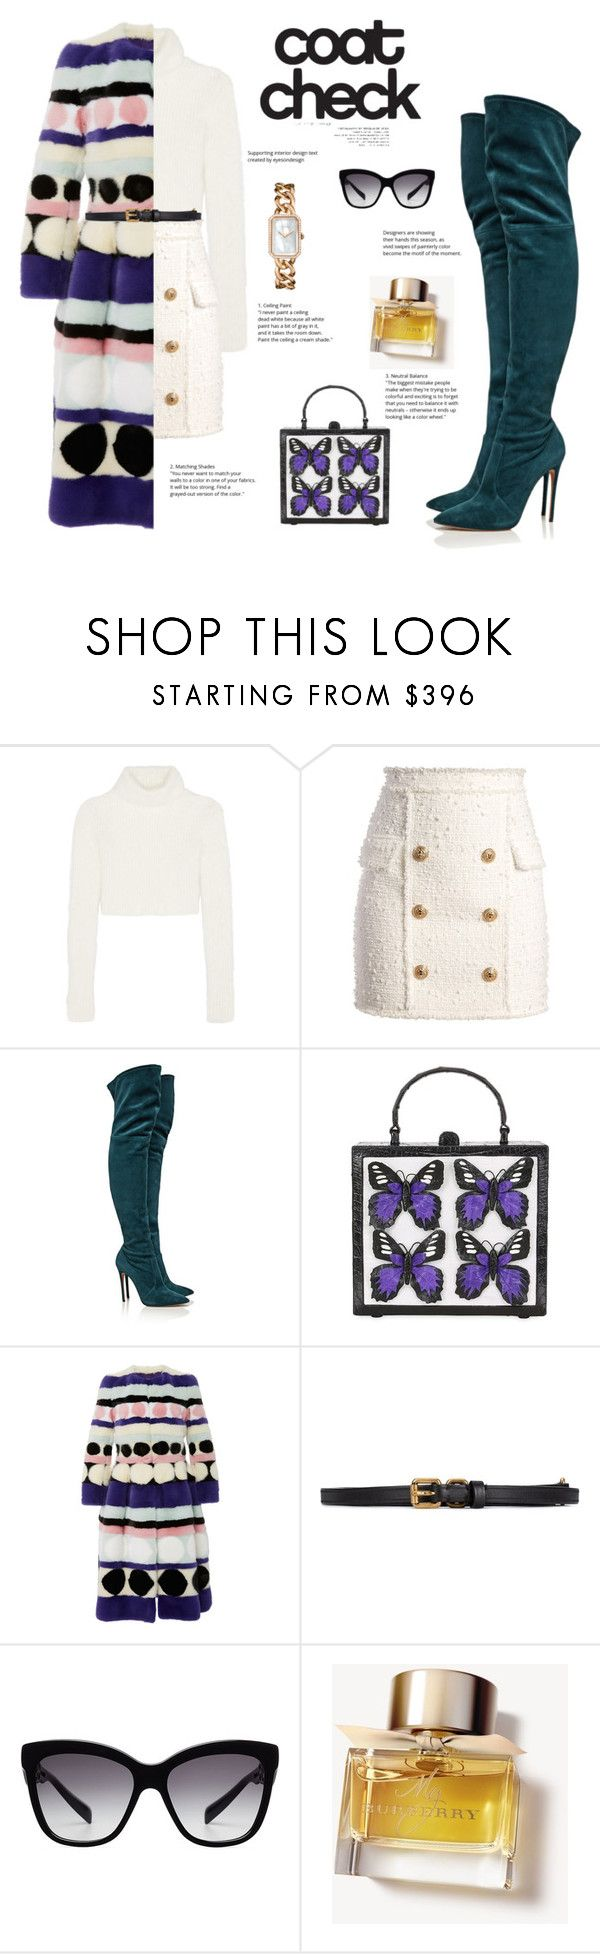 """Go Bold: Statement Coats"" by fashionbrownies ❤ liked on Polyvore featuring Roberto Cavalli, Balmain, Casadei, Nancy Gonzalez, Carolina Herrera, Lanvin, Chanel, Dolce&Gabbana, Burberry and dolceandgabbana"